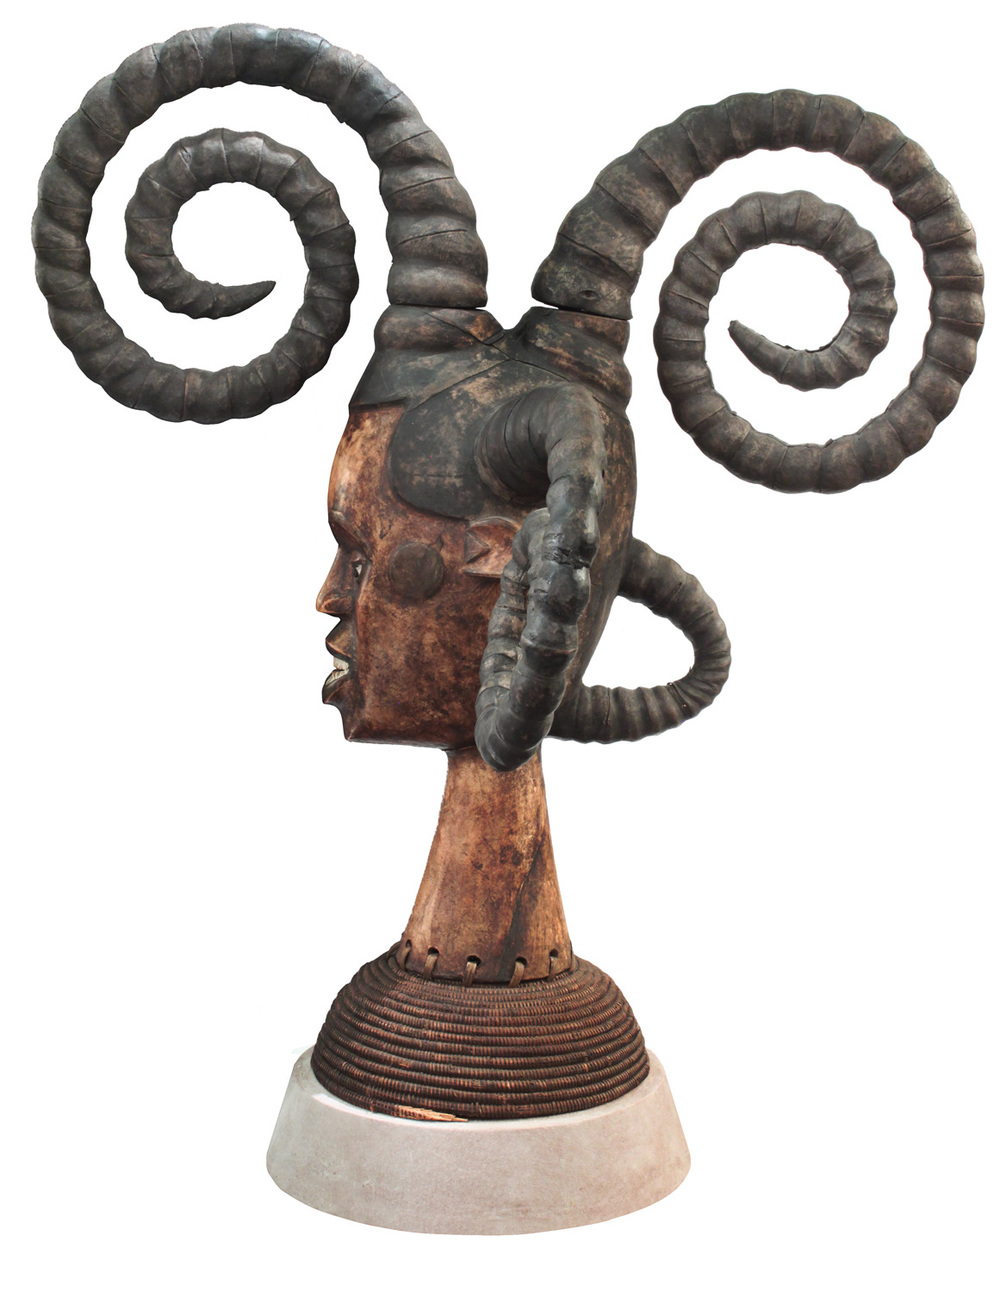 Springer 38 African Medusa sculpture98 detail2 hires.jpg